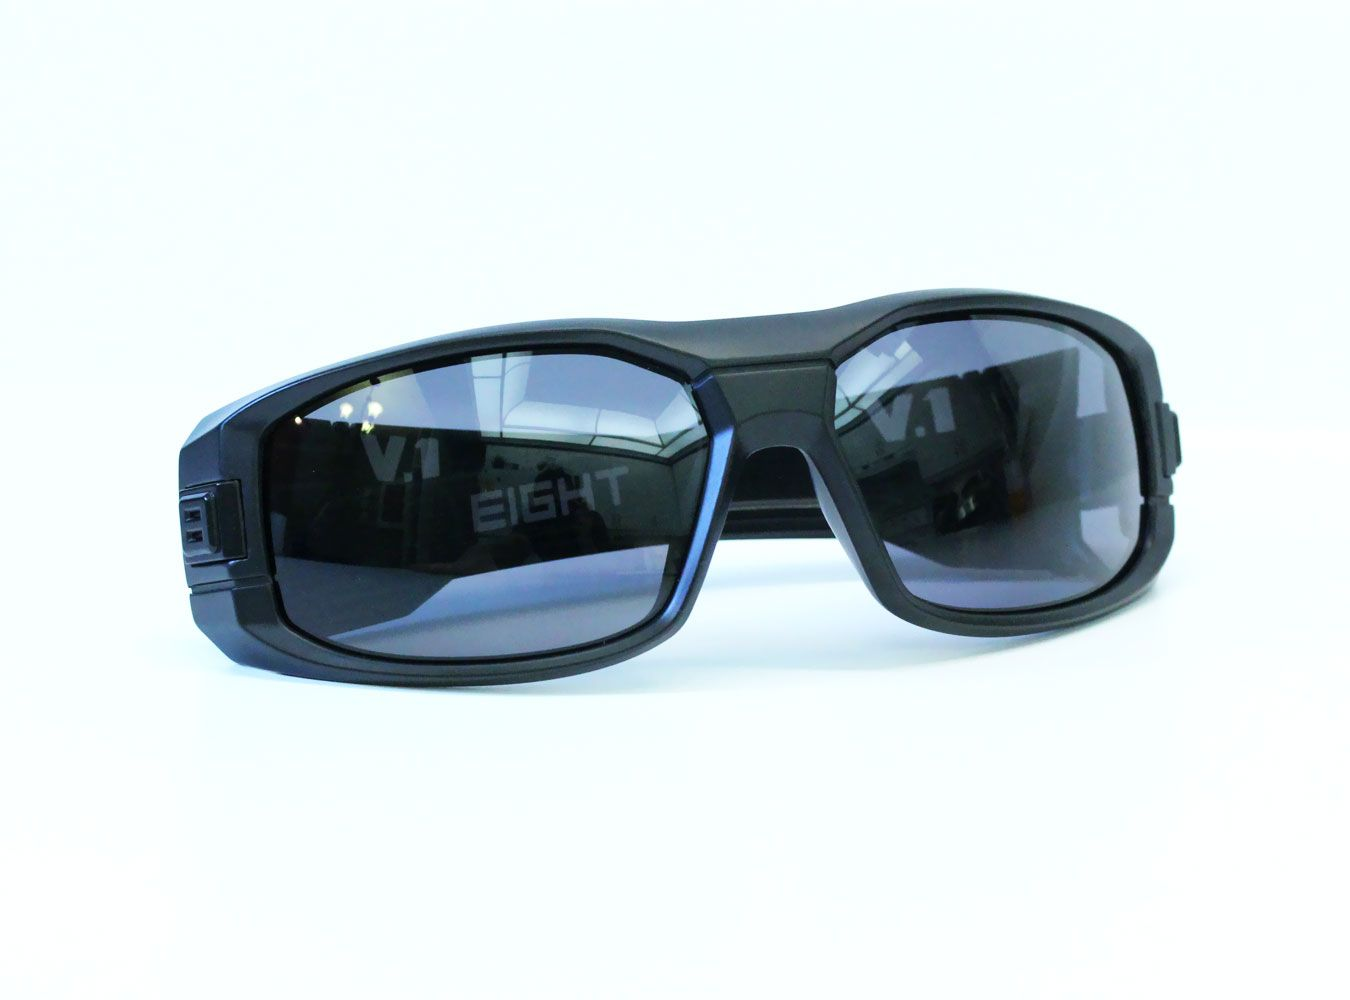 47e4bcbbcc Matte Black V.1 from EIGHT WWW.IWEAR8.COM  8eyewear  sunglasses  shades   cool  mensfashion  fashion  style  summer  eight